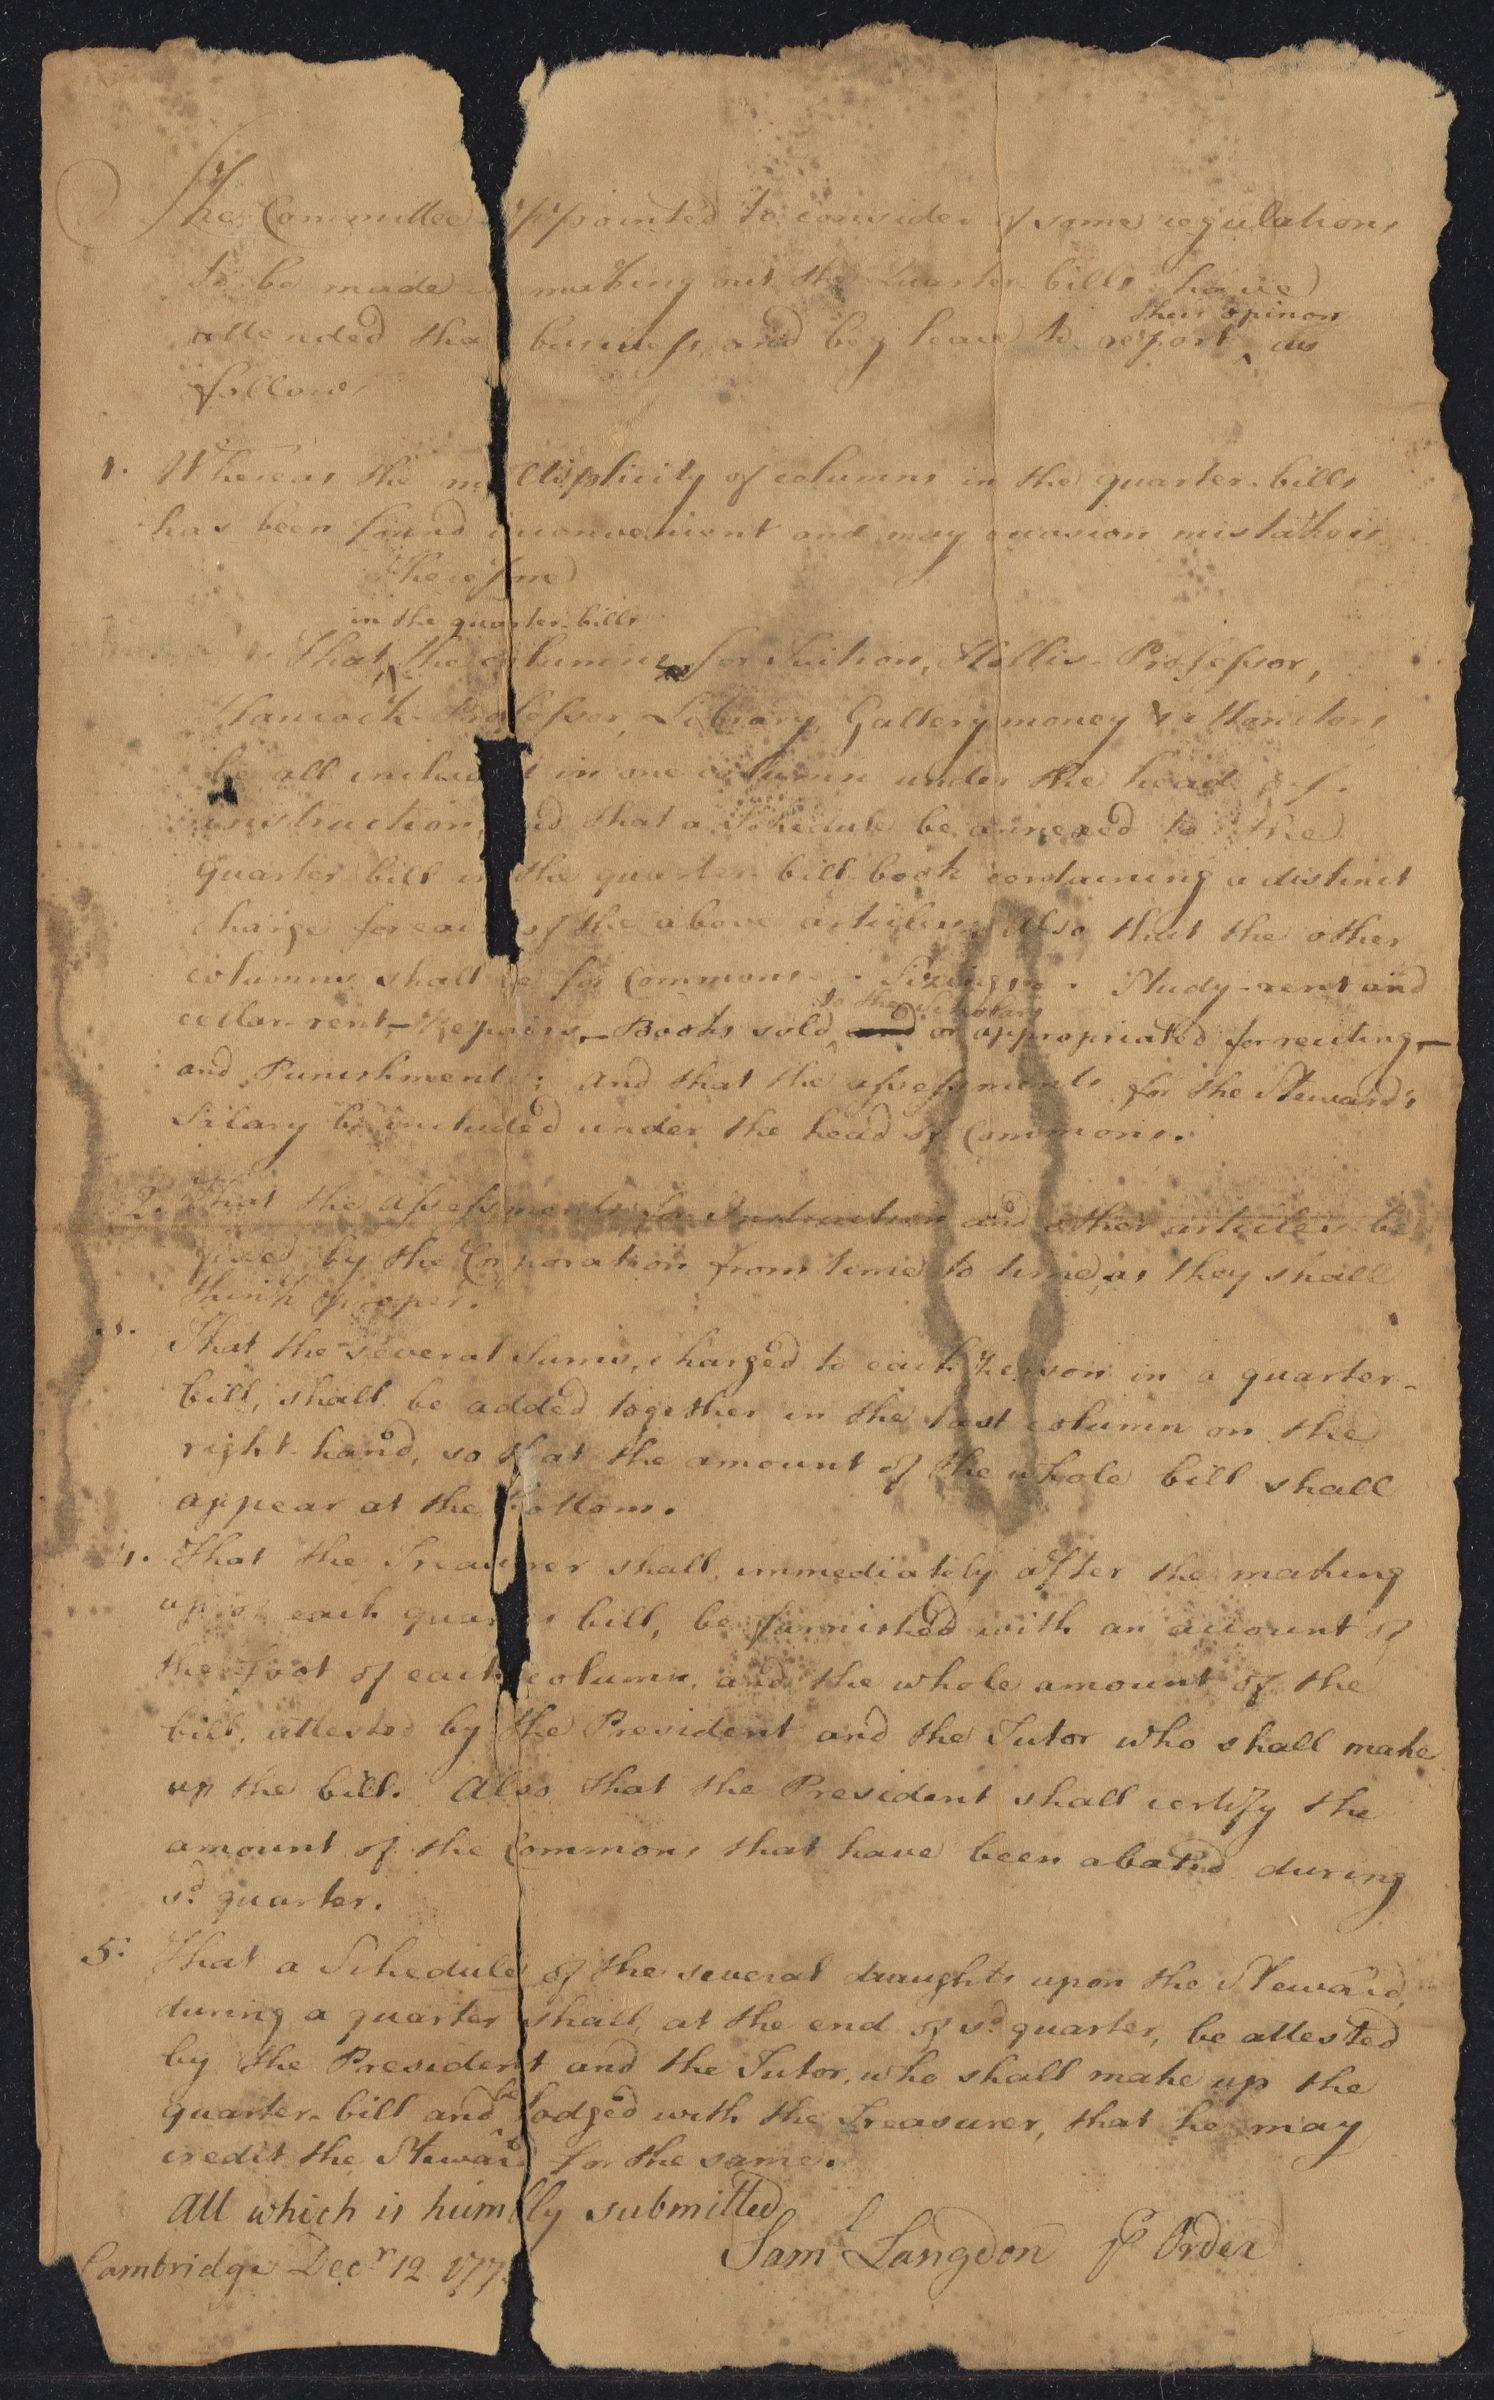 Report of committee for the form of quarter bills, 1778 December 12